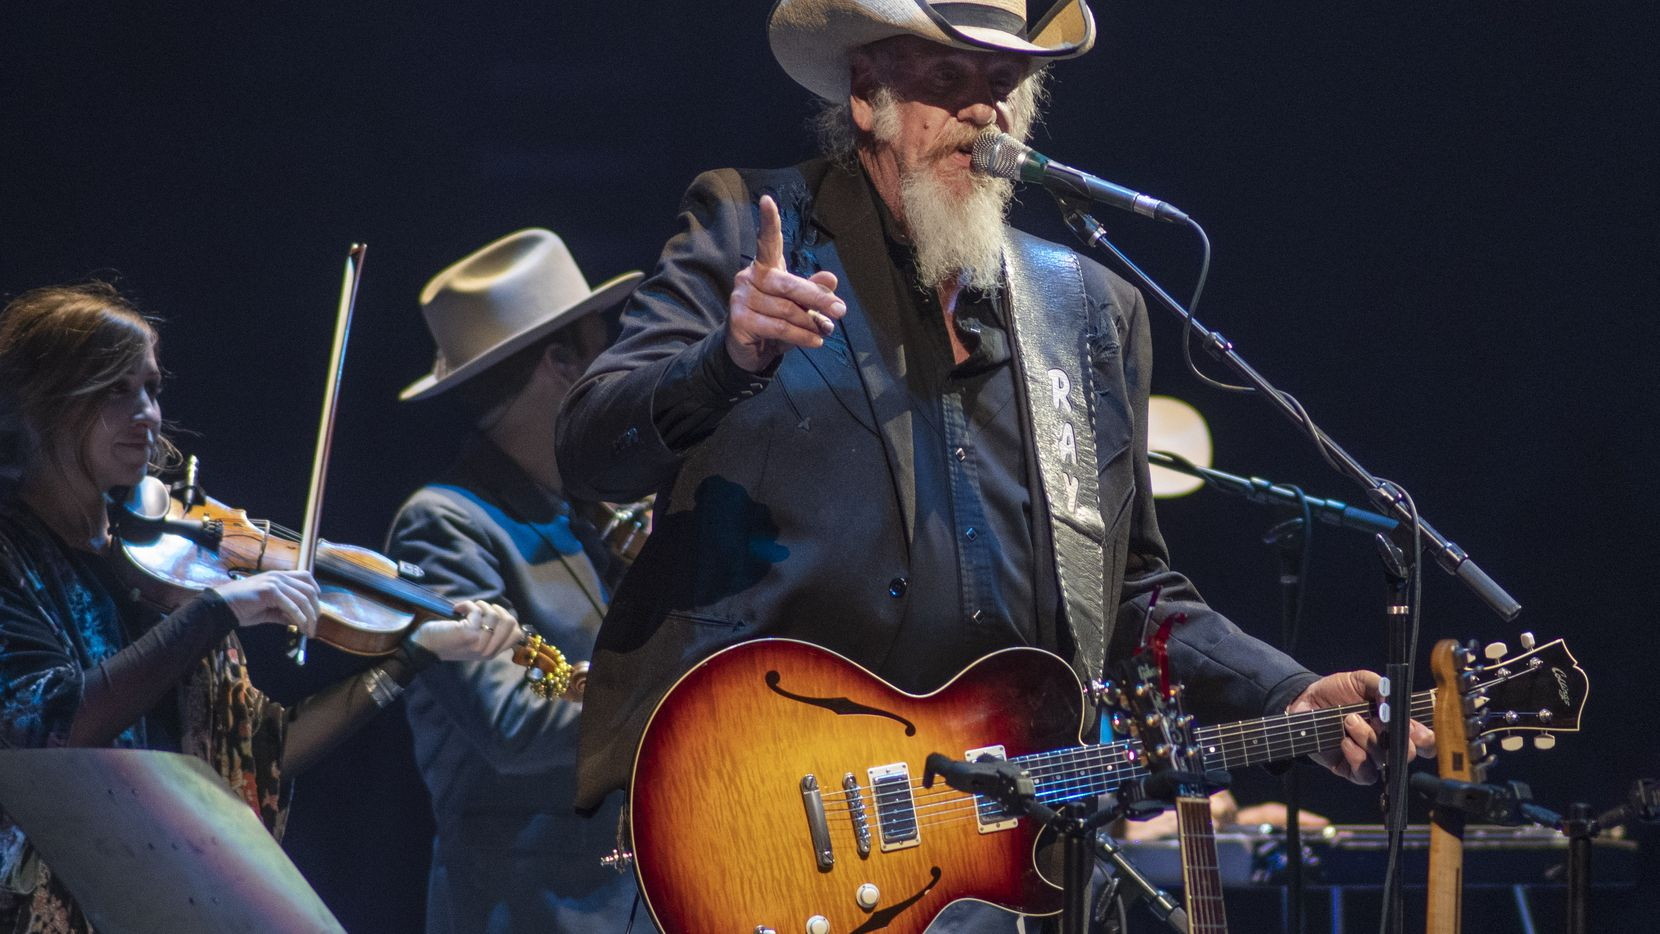 Ray Benson of Asleep at the Wheel opens for George Strait at Dickies Arena in Fort Worth, Texas on November 23, 2019.